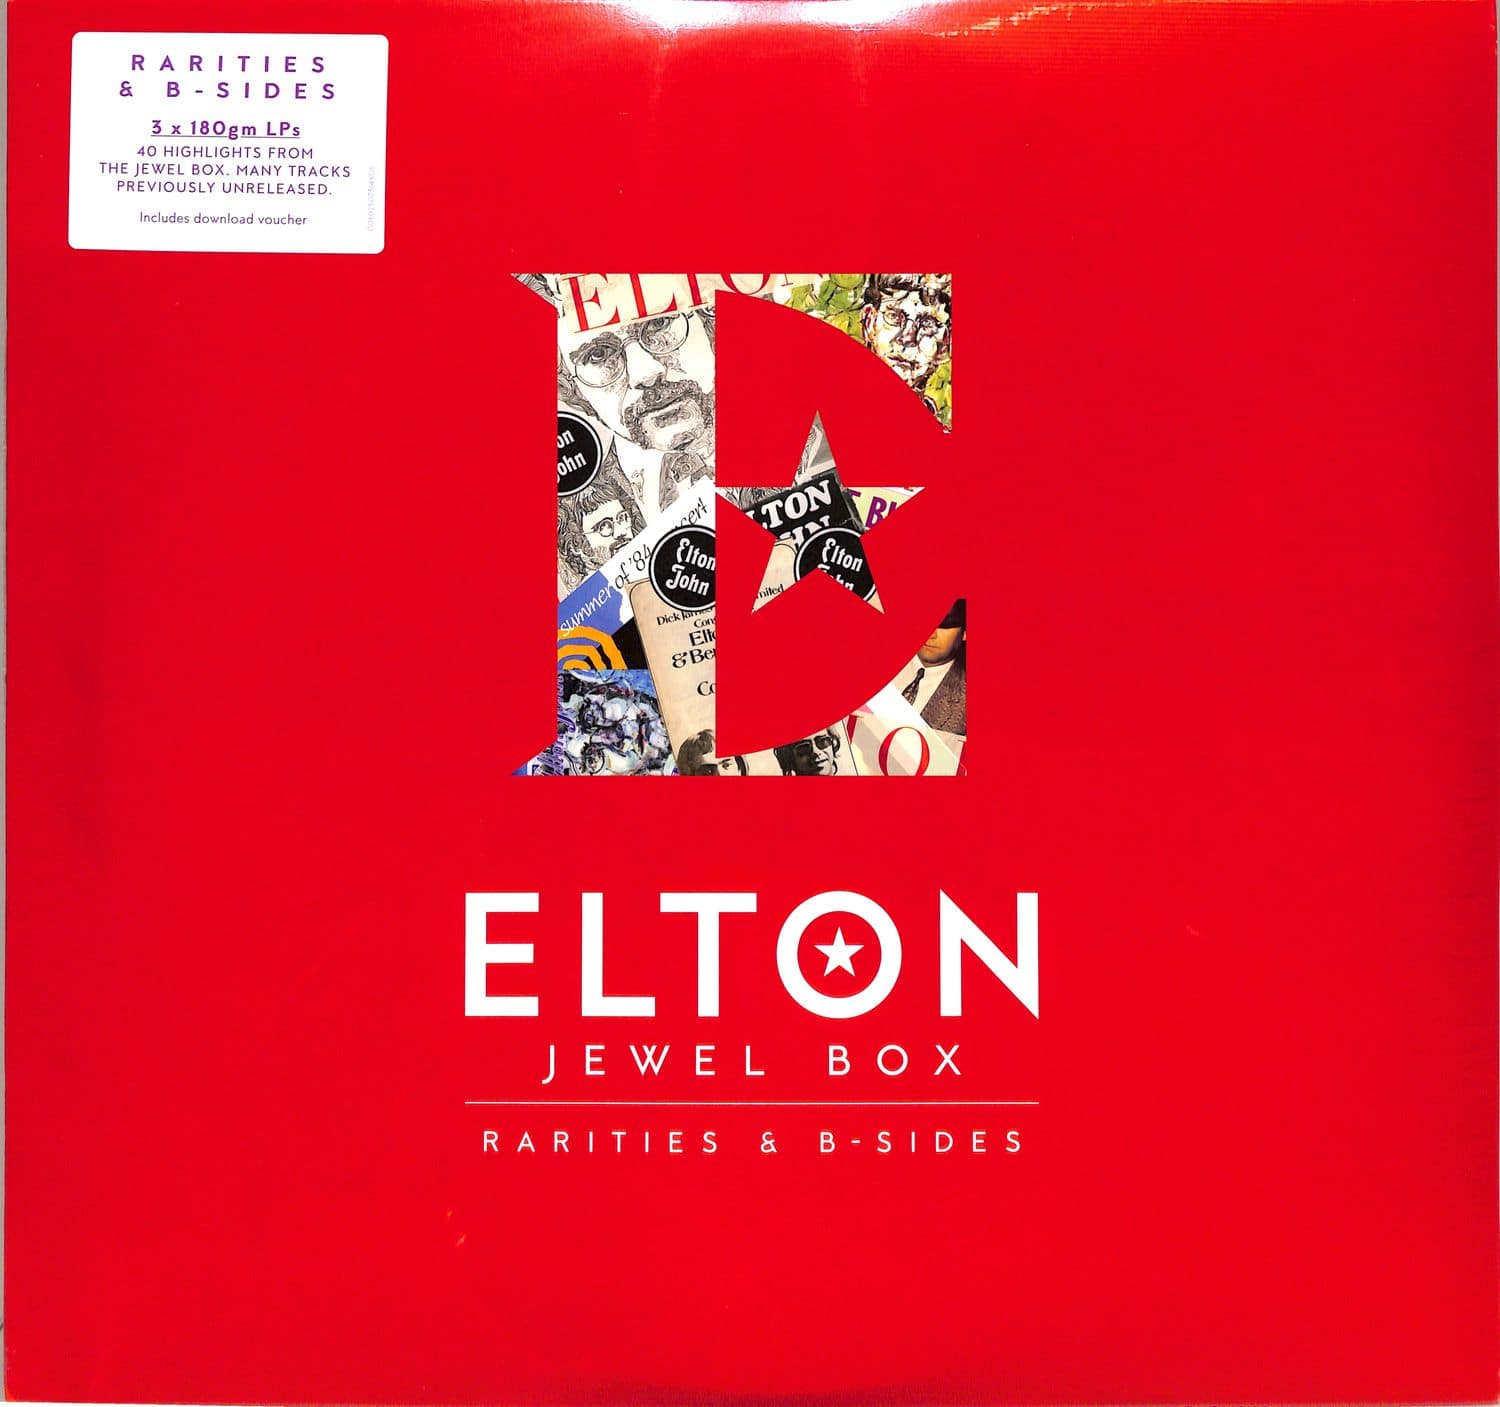 Elton John - JEWEL BOX: RARITIES AND B-SIDES